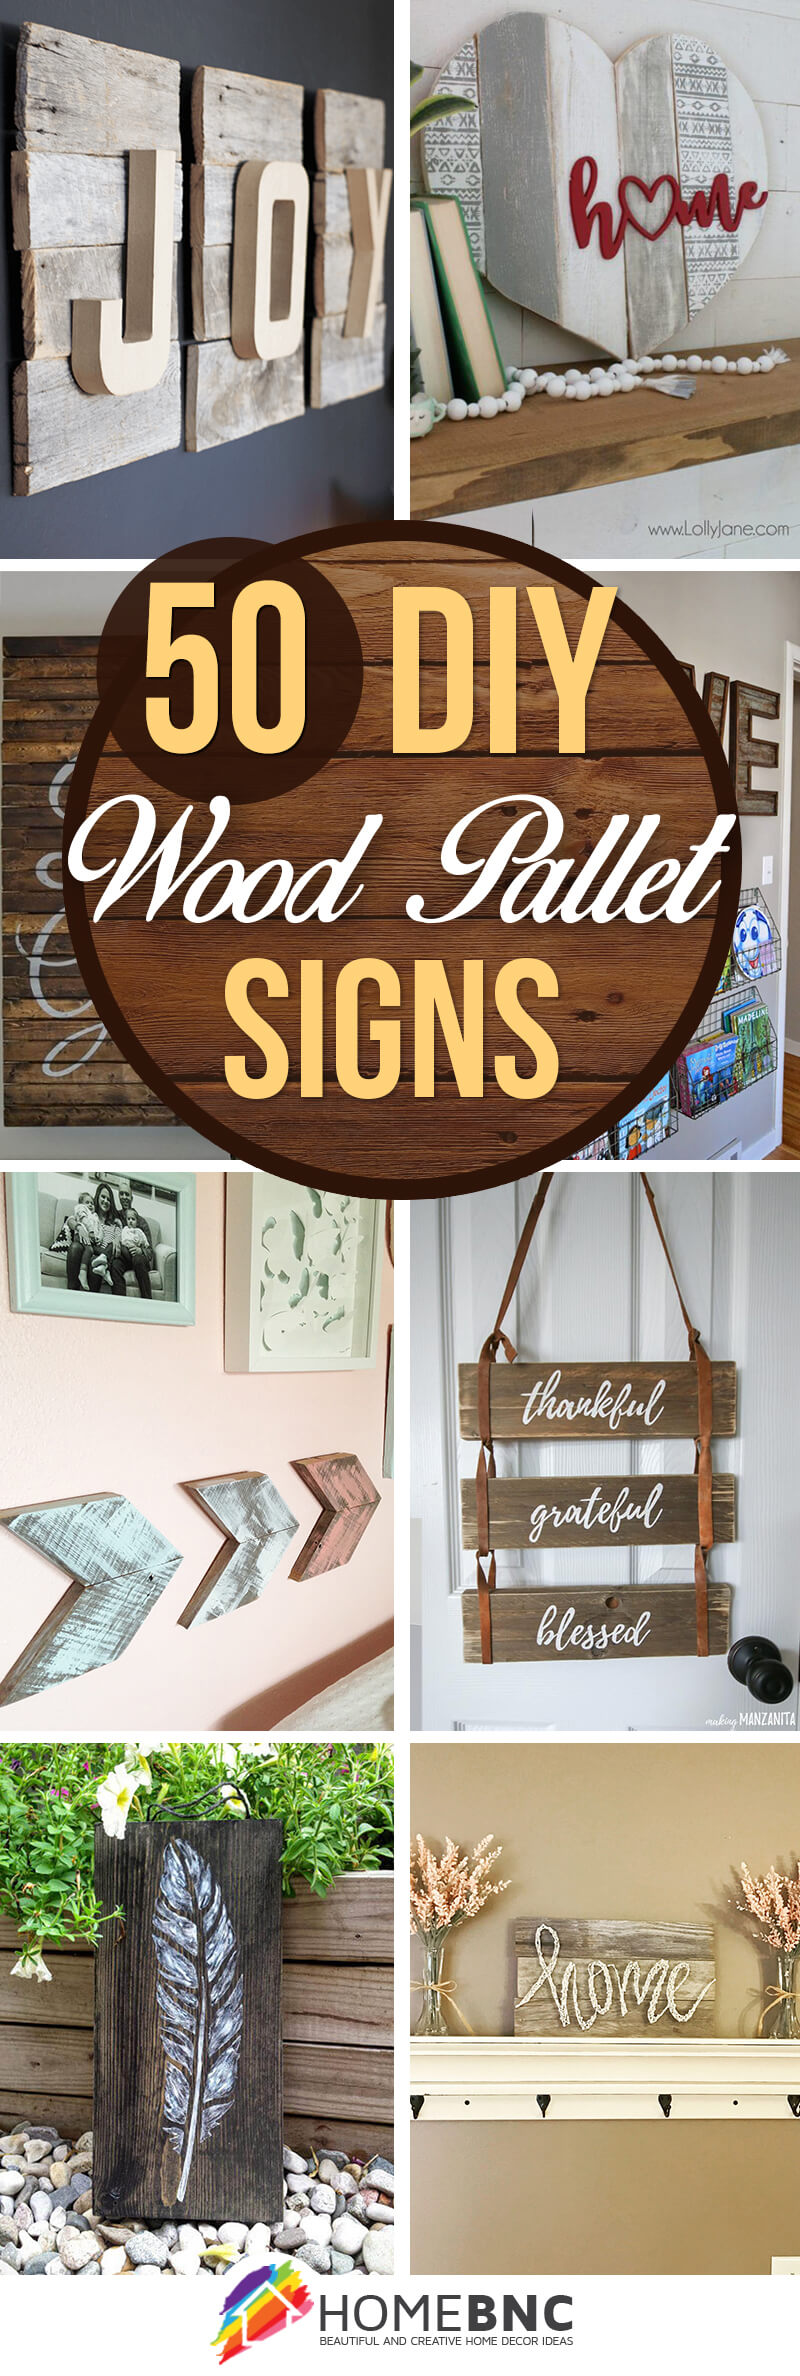 diy pallet signs ideas and designs